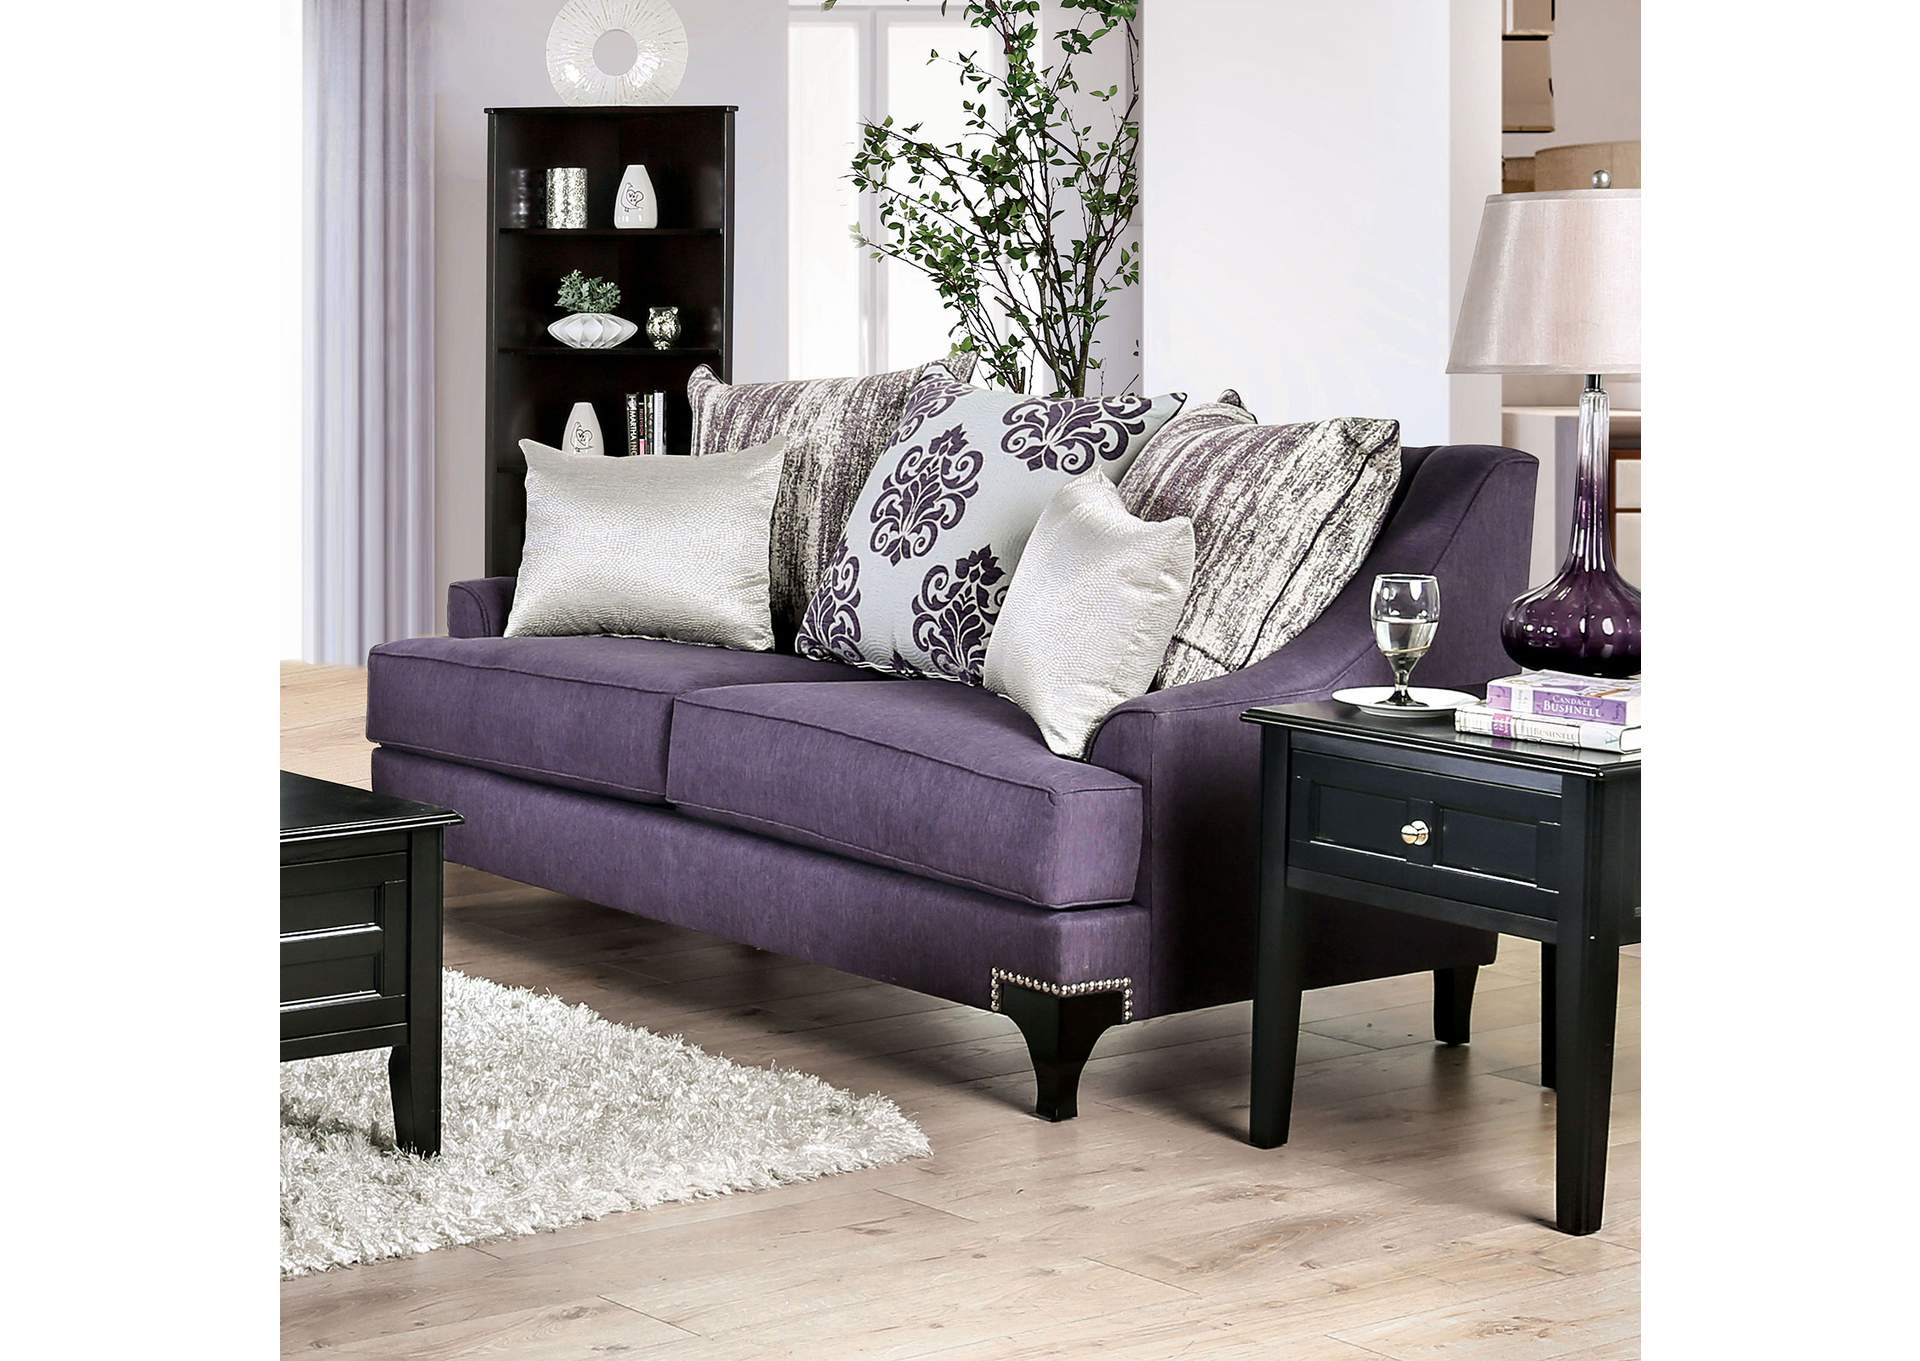 Sisseton Purple Loveseat,Furniture of America